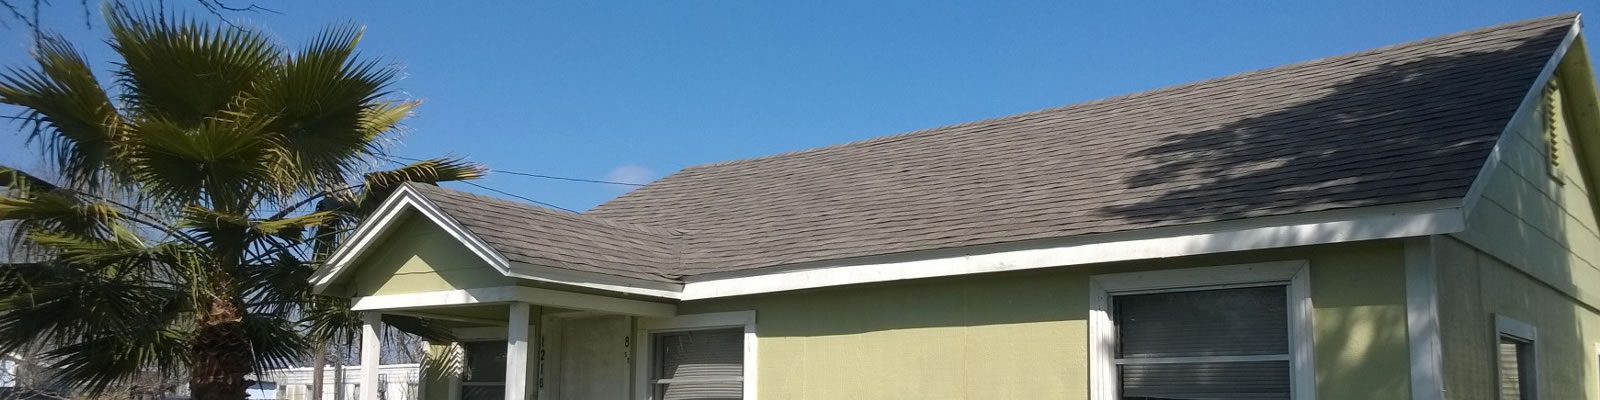 Roofing Company in Victoria Texas